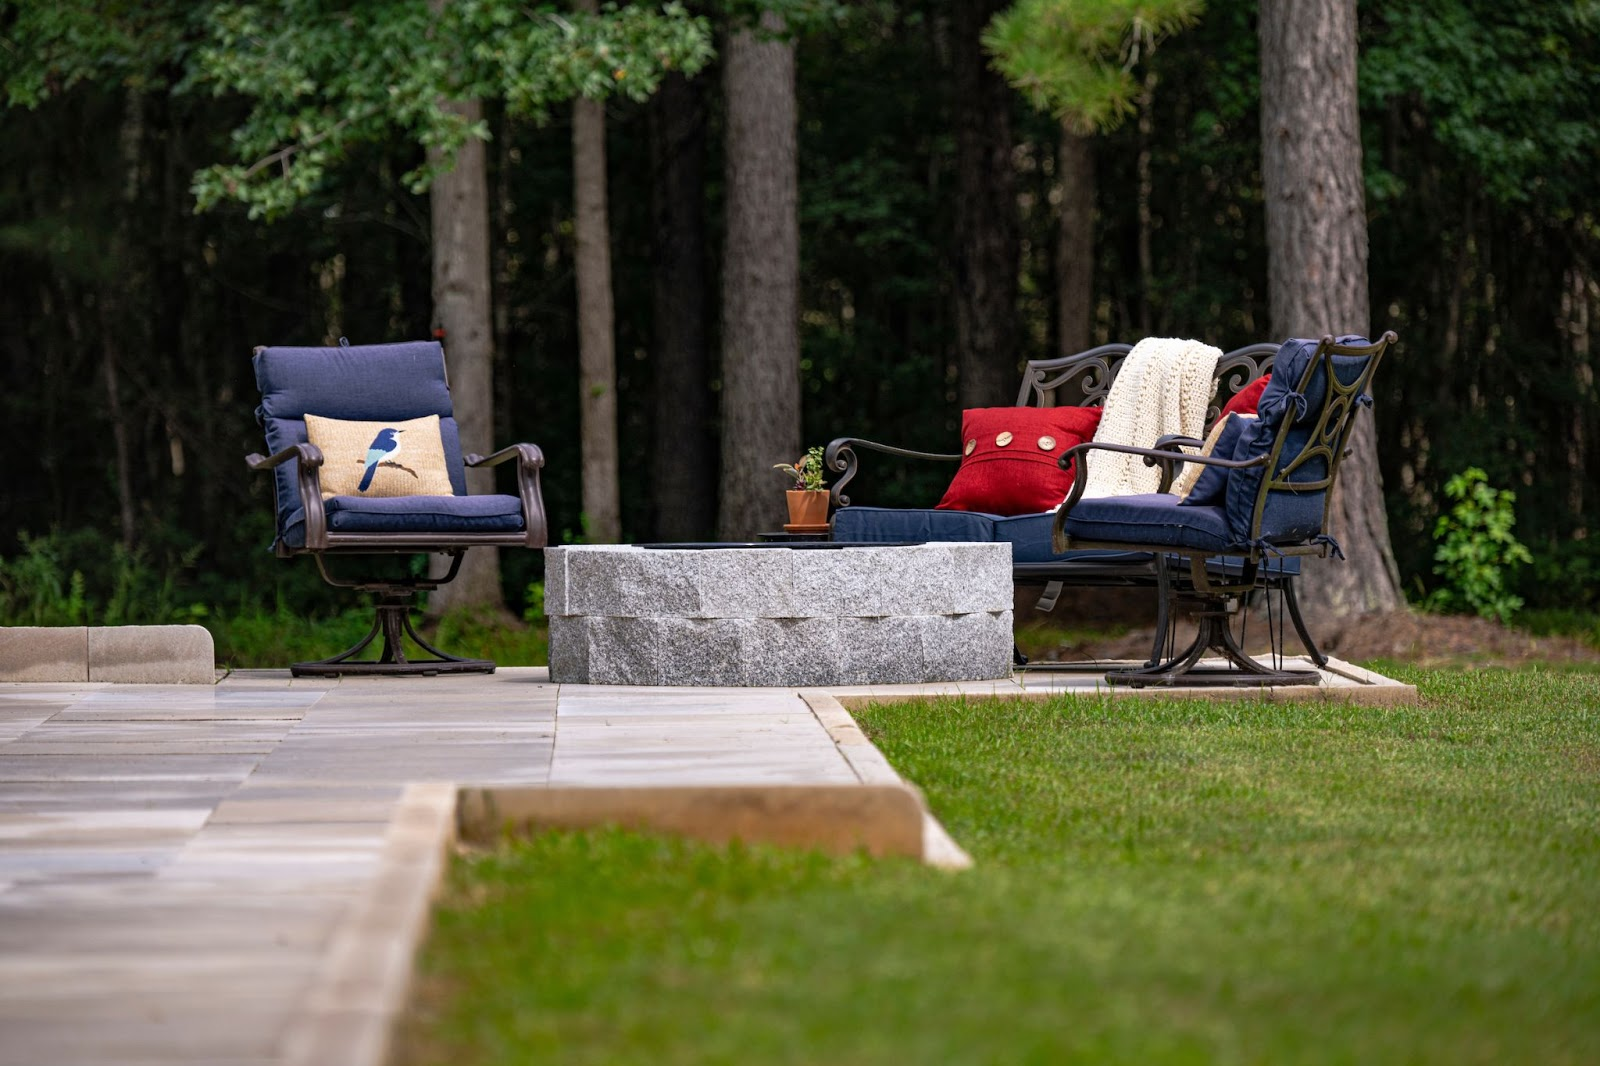 Granite fire pit with seating, Indiana Limestone patio, and summer decor